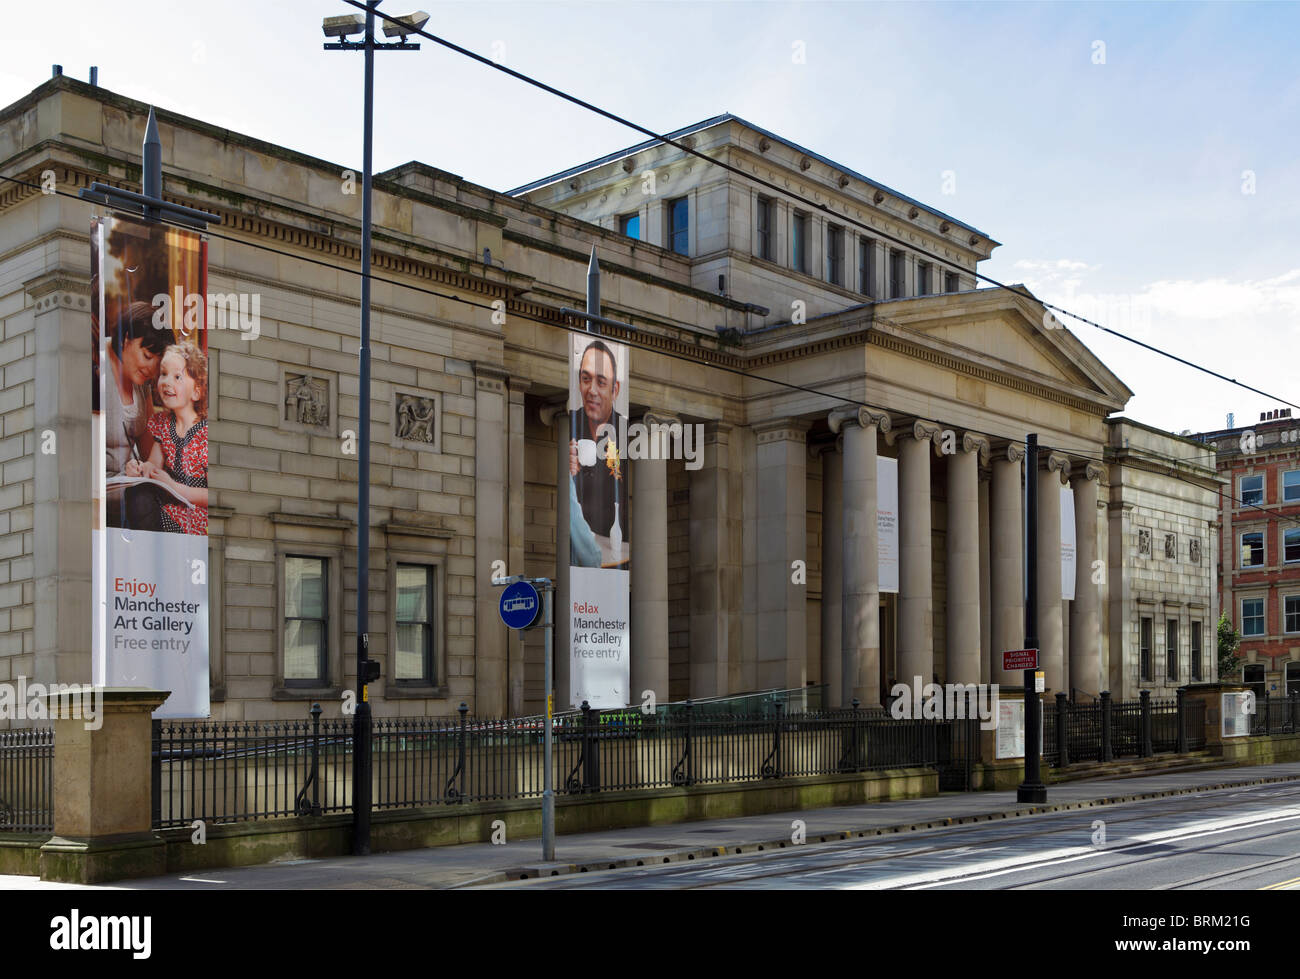 Manchester Art Gallery, designed by Sir Charles Barry in 1824 and situated in Mosley Street in Manchester City centre. - Stock Image